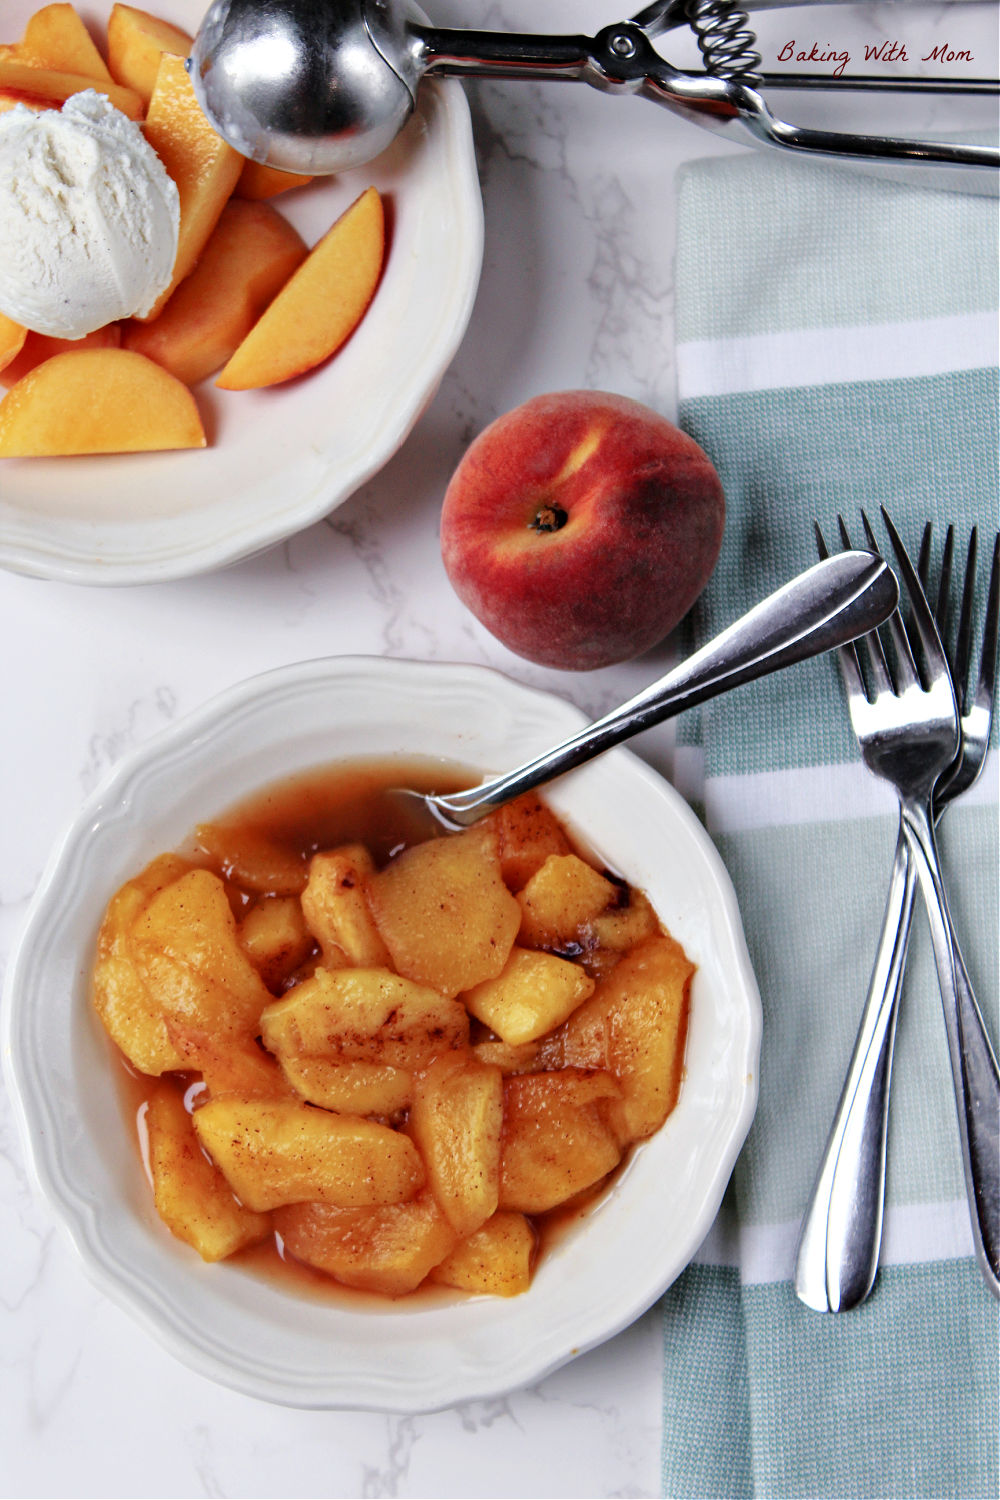 Cut and flavored cooked peaches in a bowl.